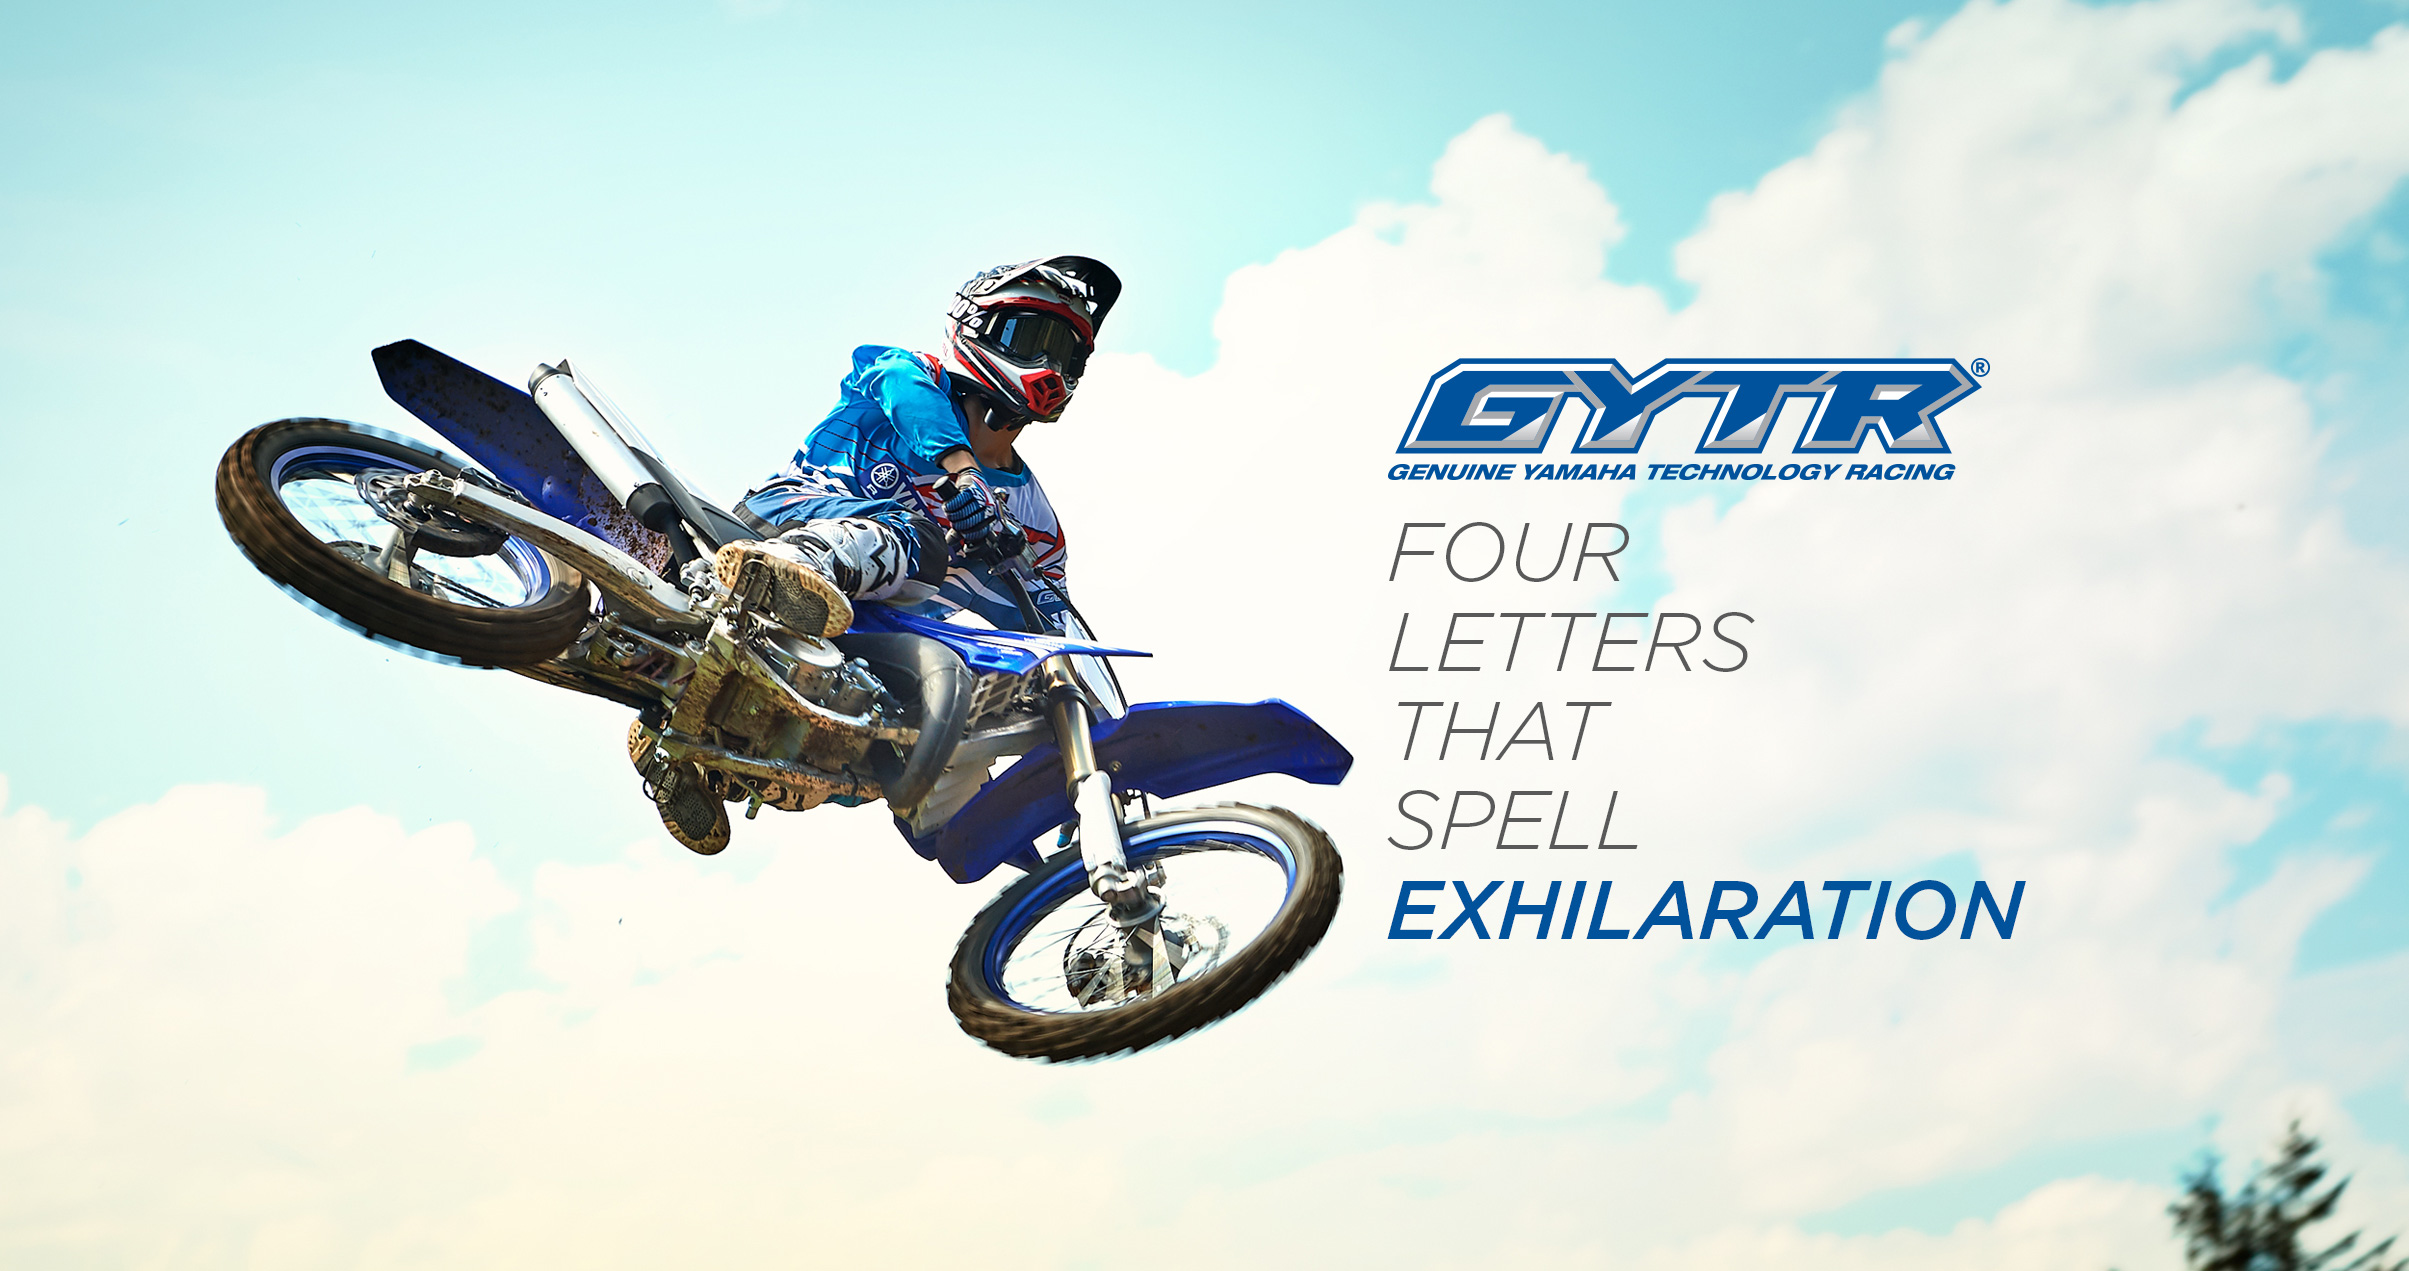 genuine yamaha technology racing gytr performance products [ 2409 x 1271 Pixel ]